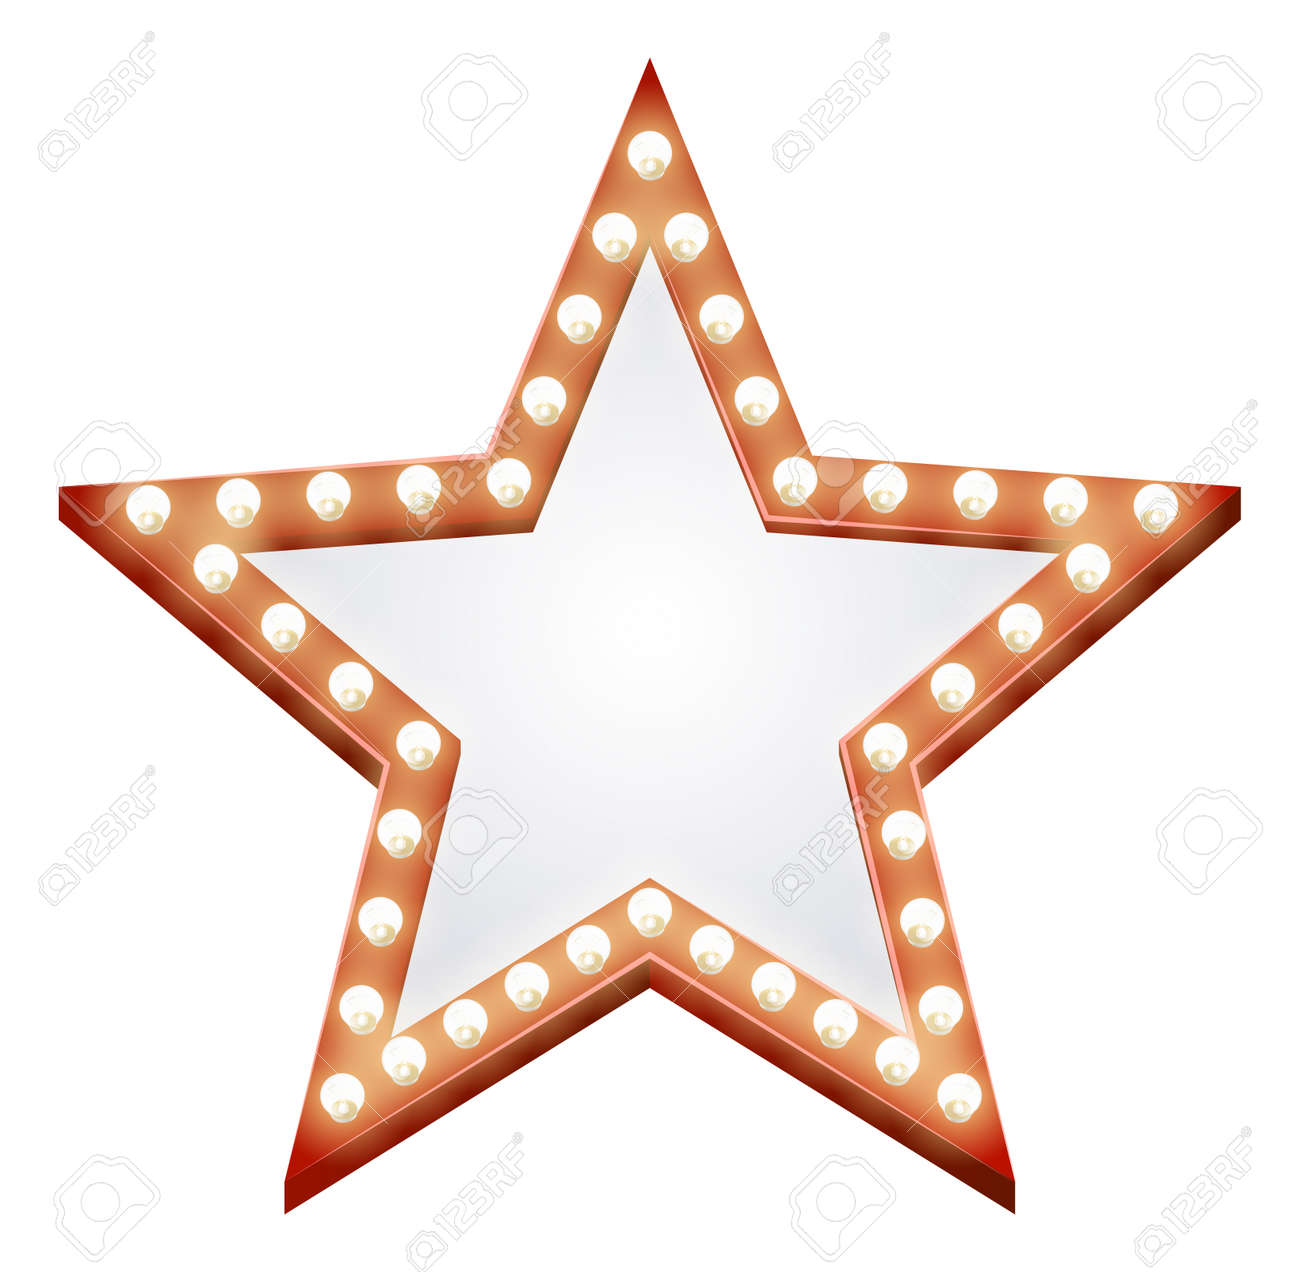 Illustration of a star shaped illuminated sign with light bulbs round it - 15262055